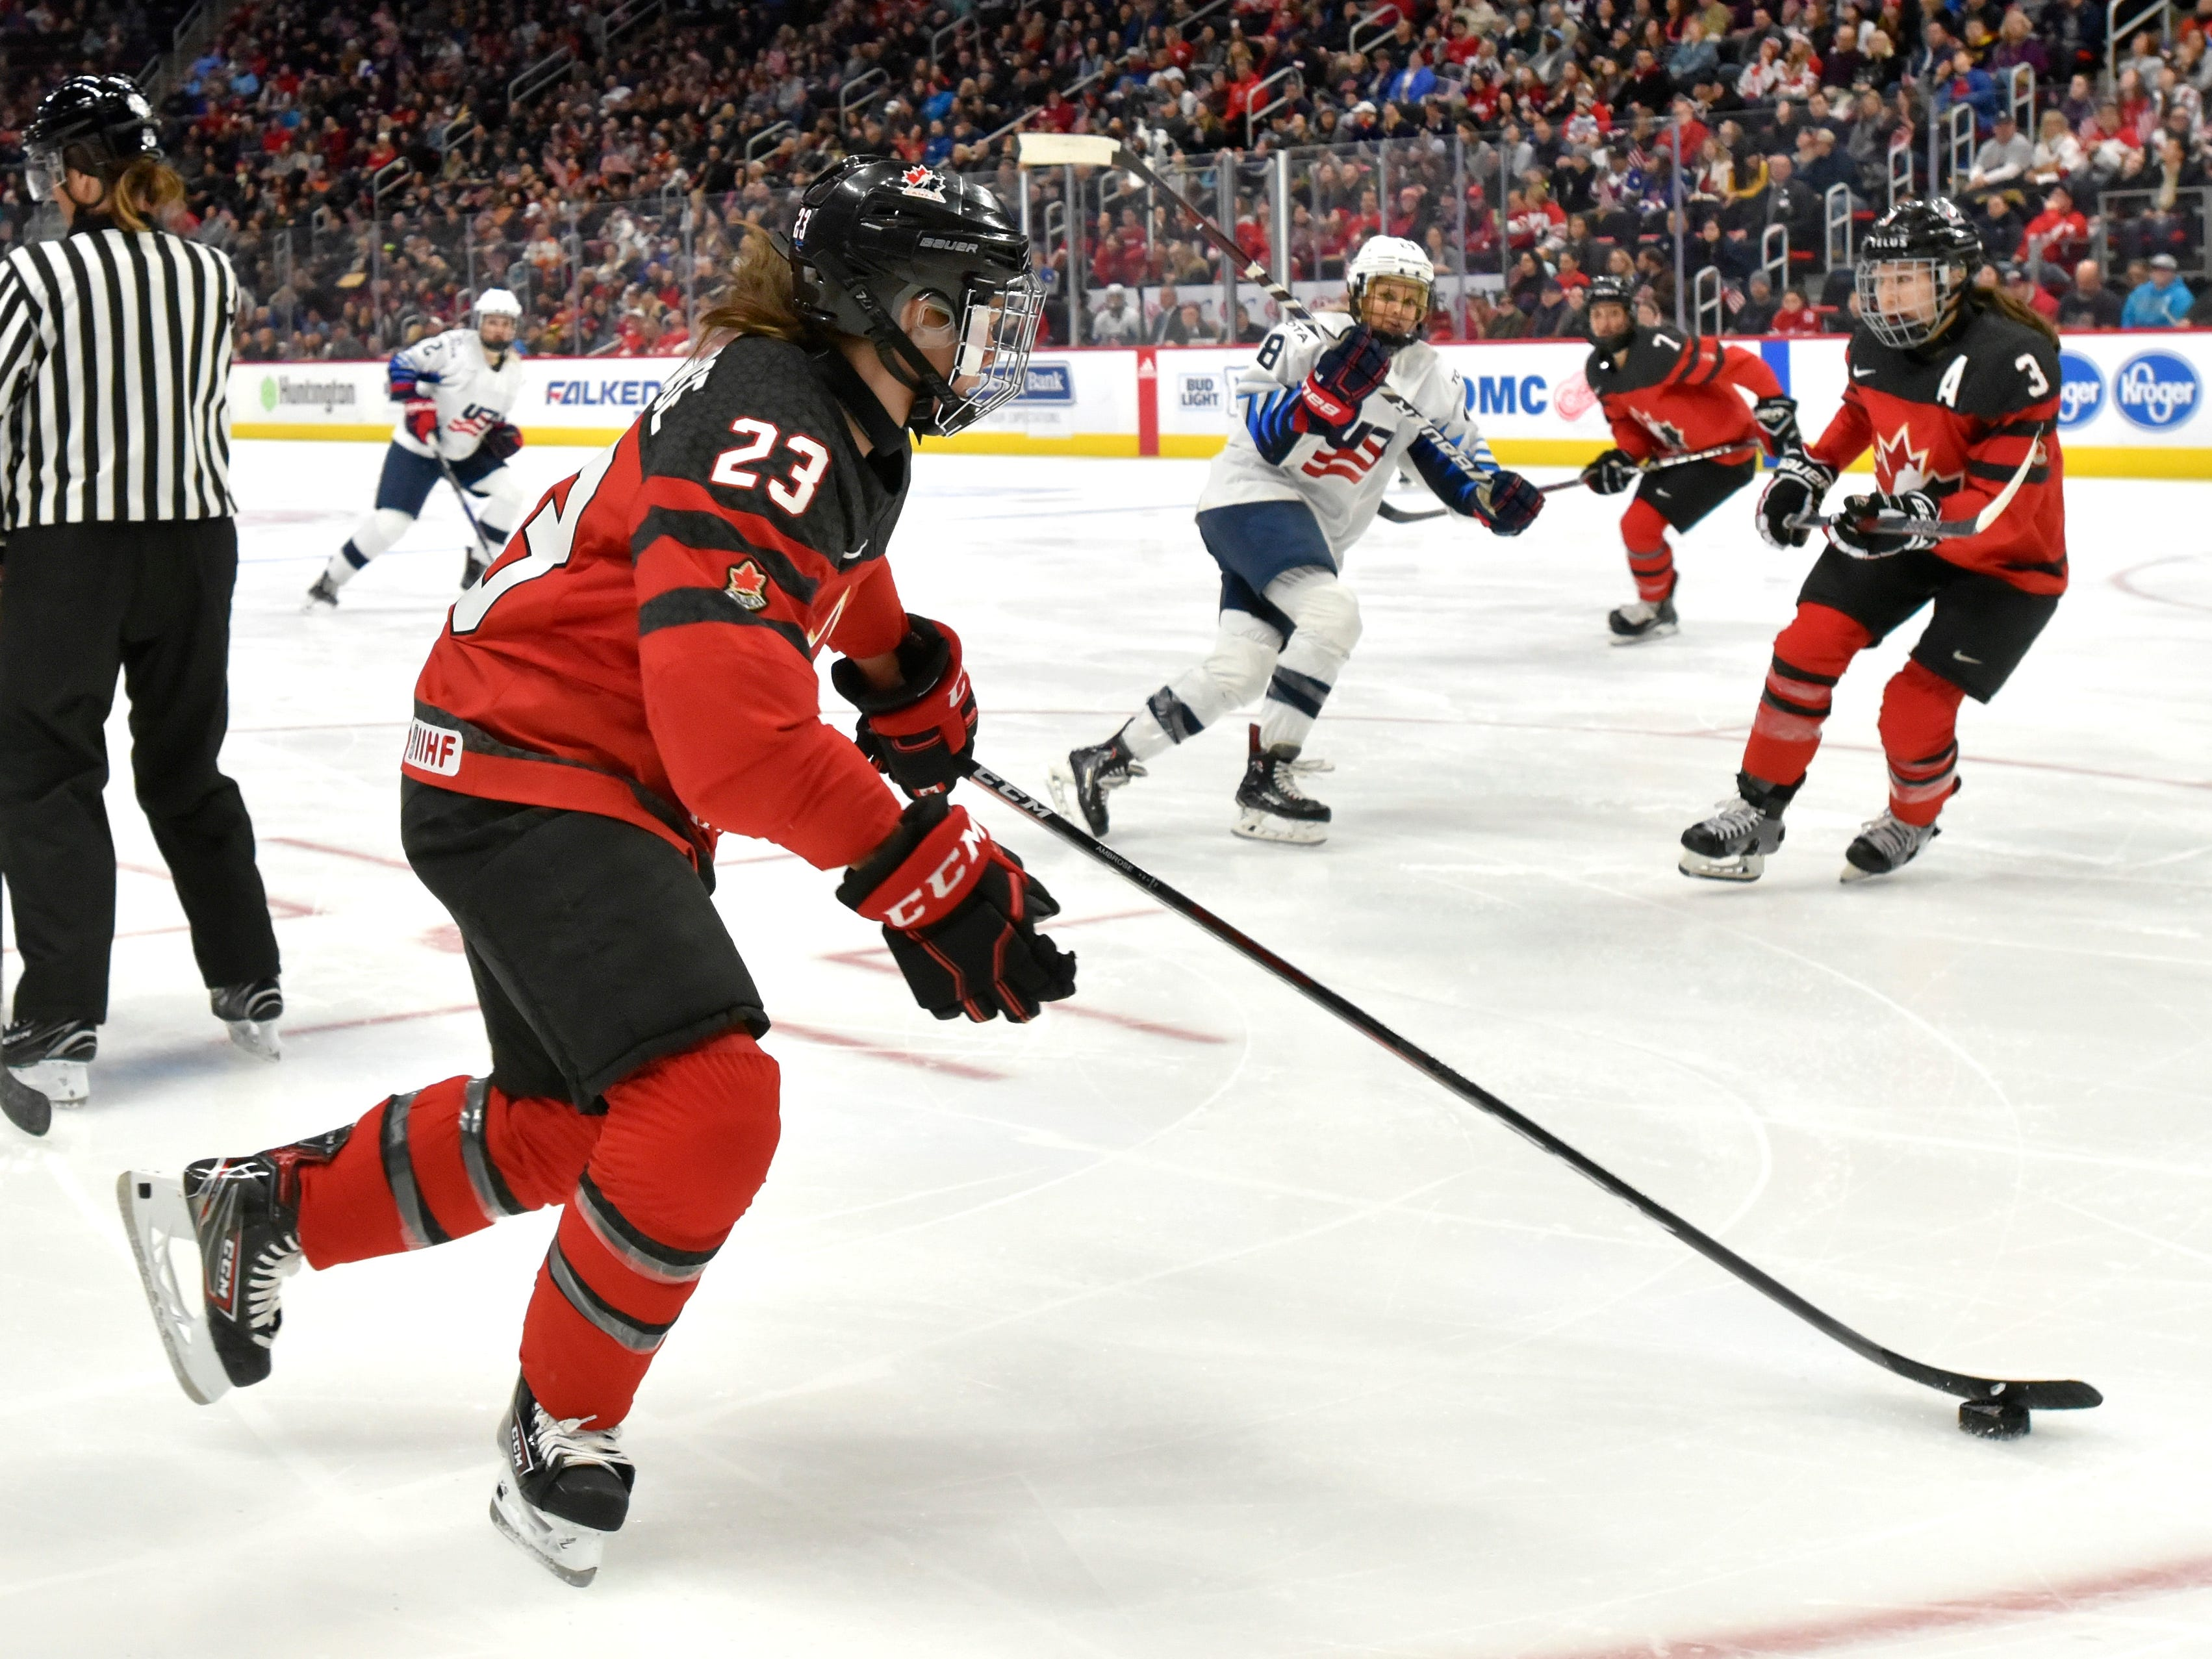 Canada's Erin Ambrose(23) skates away with the puck after a face off in the first period.